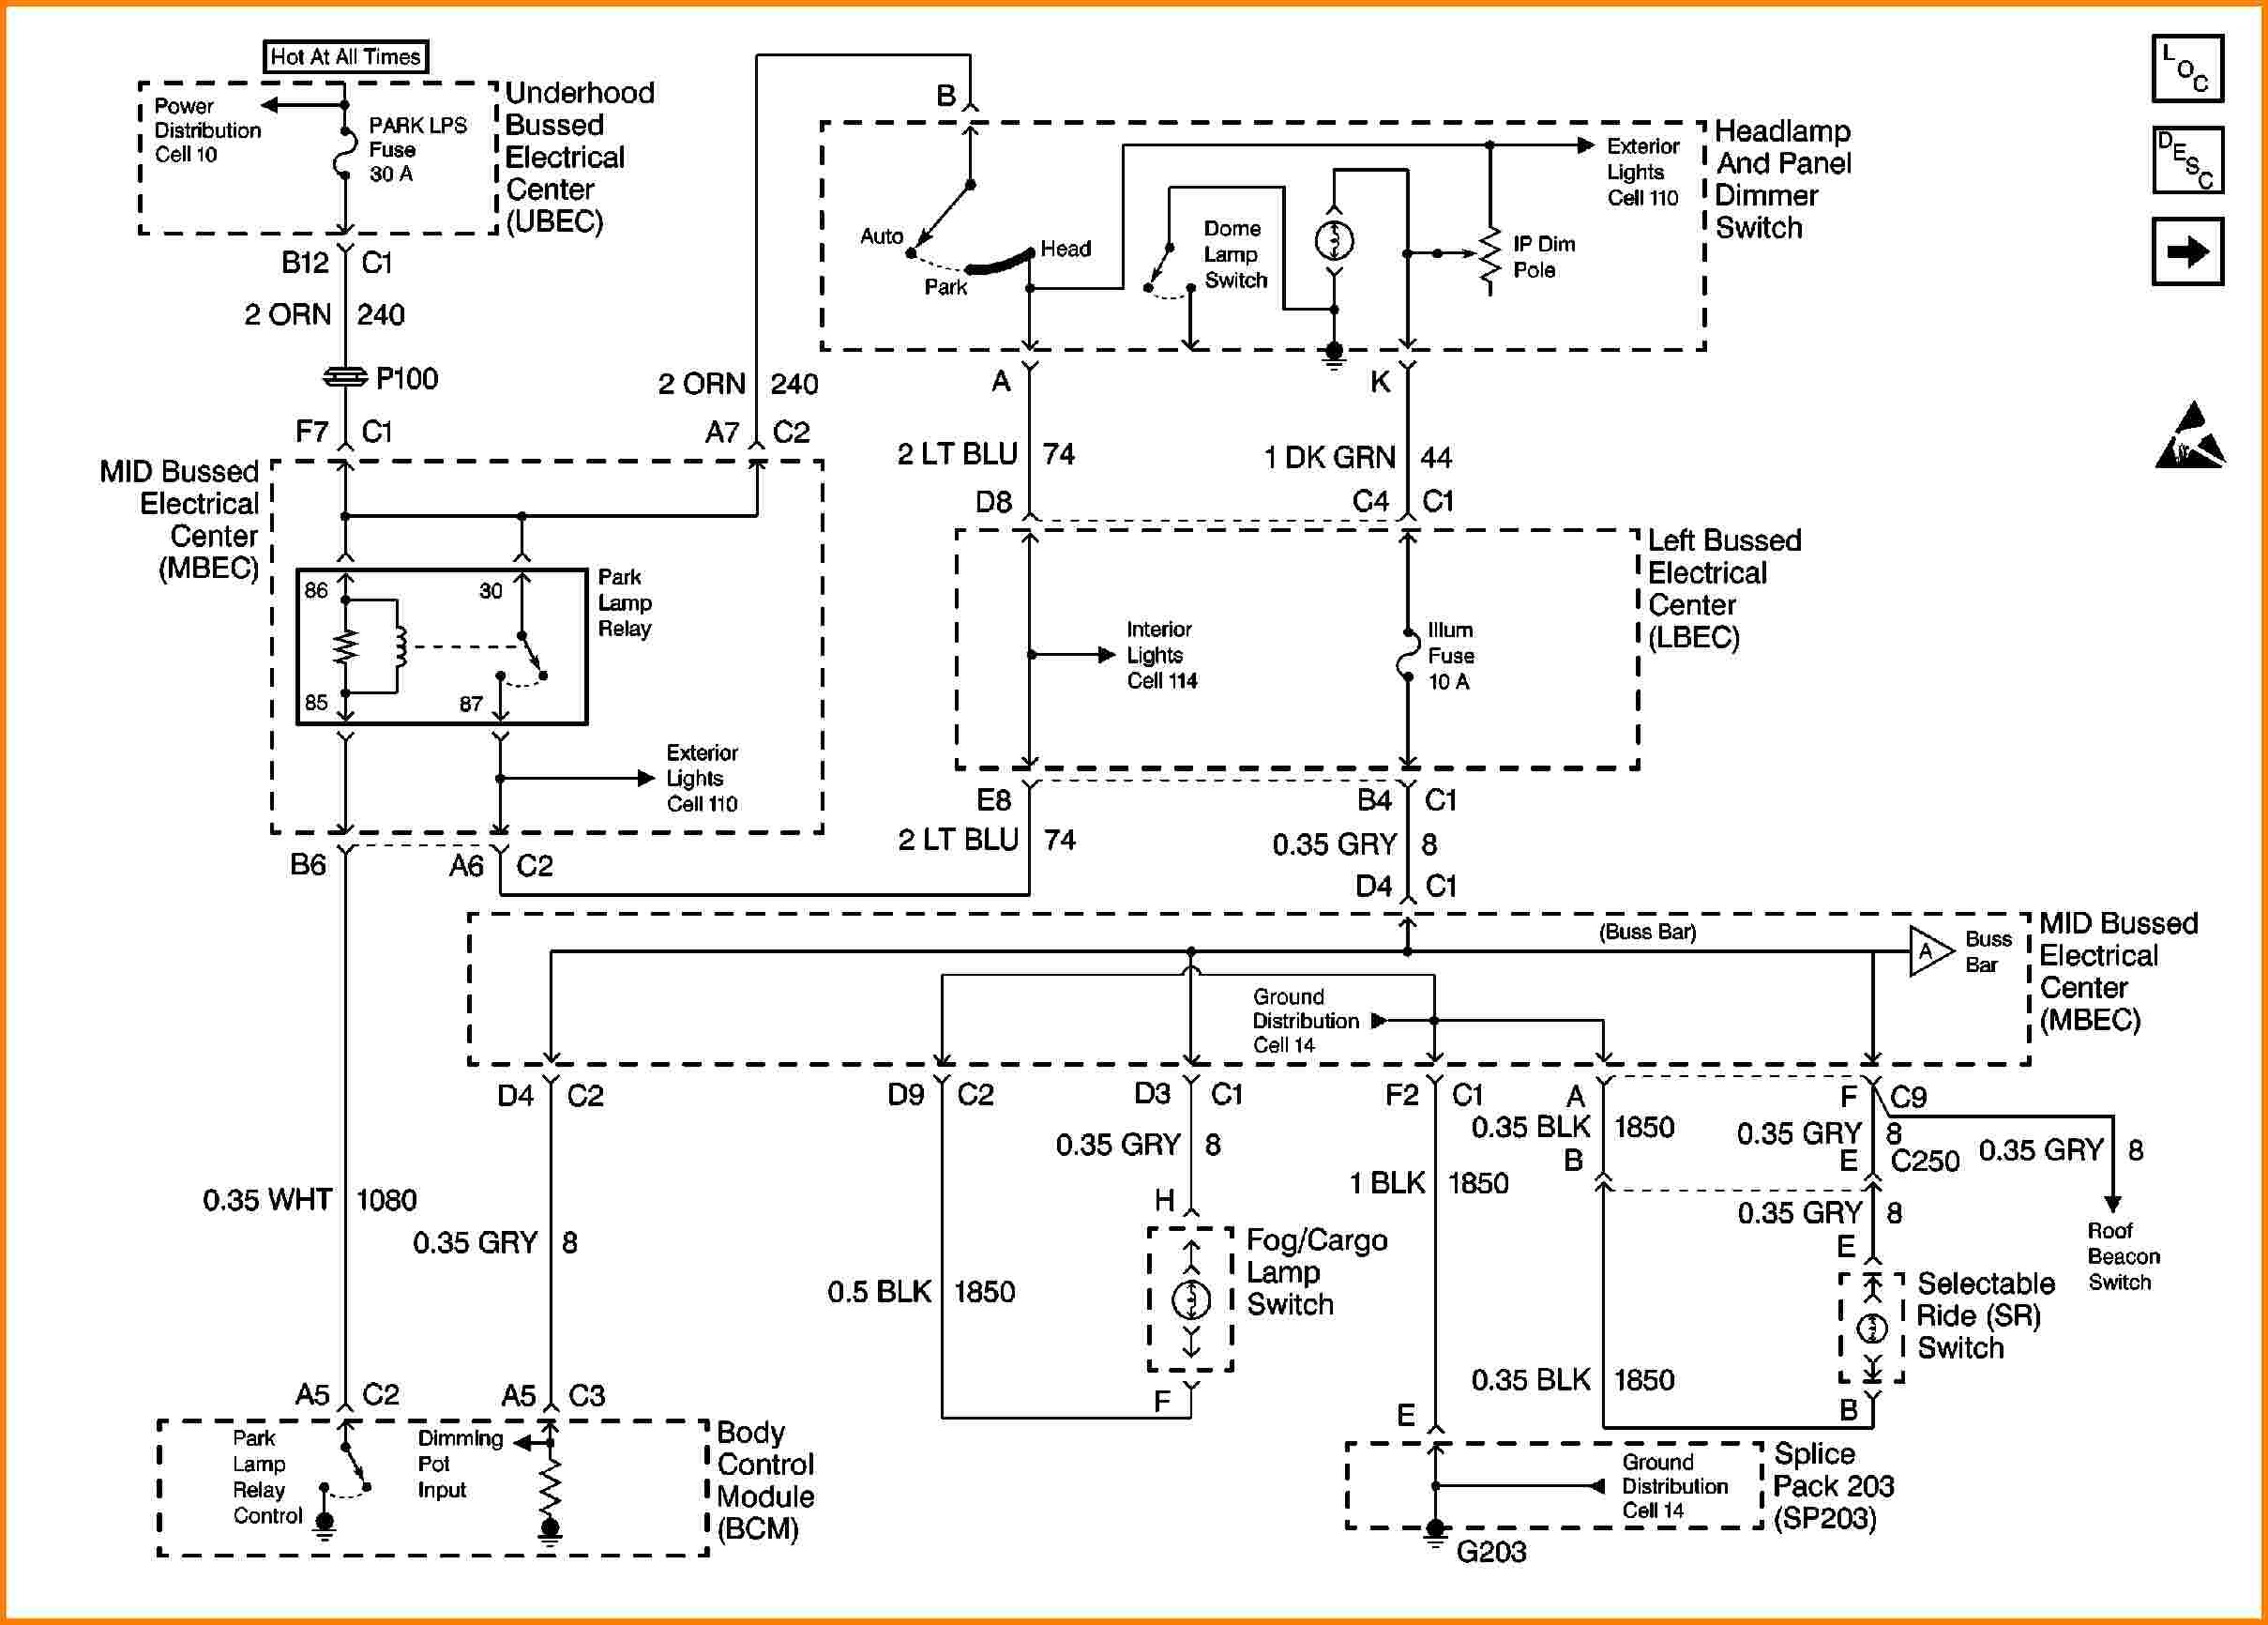 2005 Gmc Sierra Wiring Schematic - Wiring Diagram For Fender Stratocaster  for Wiring Diagram SchematicsWiring Diagram Schematics